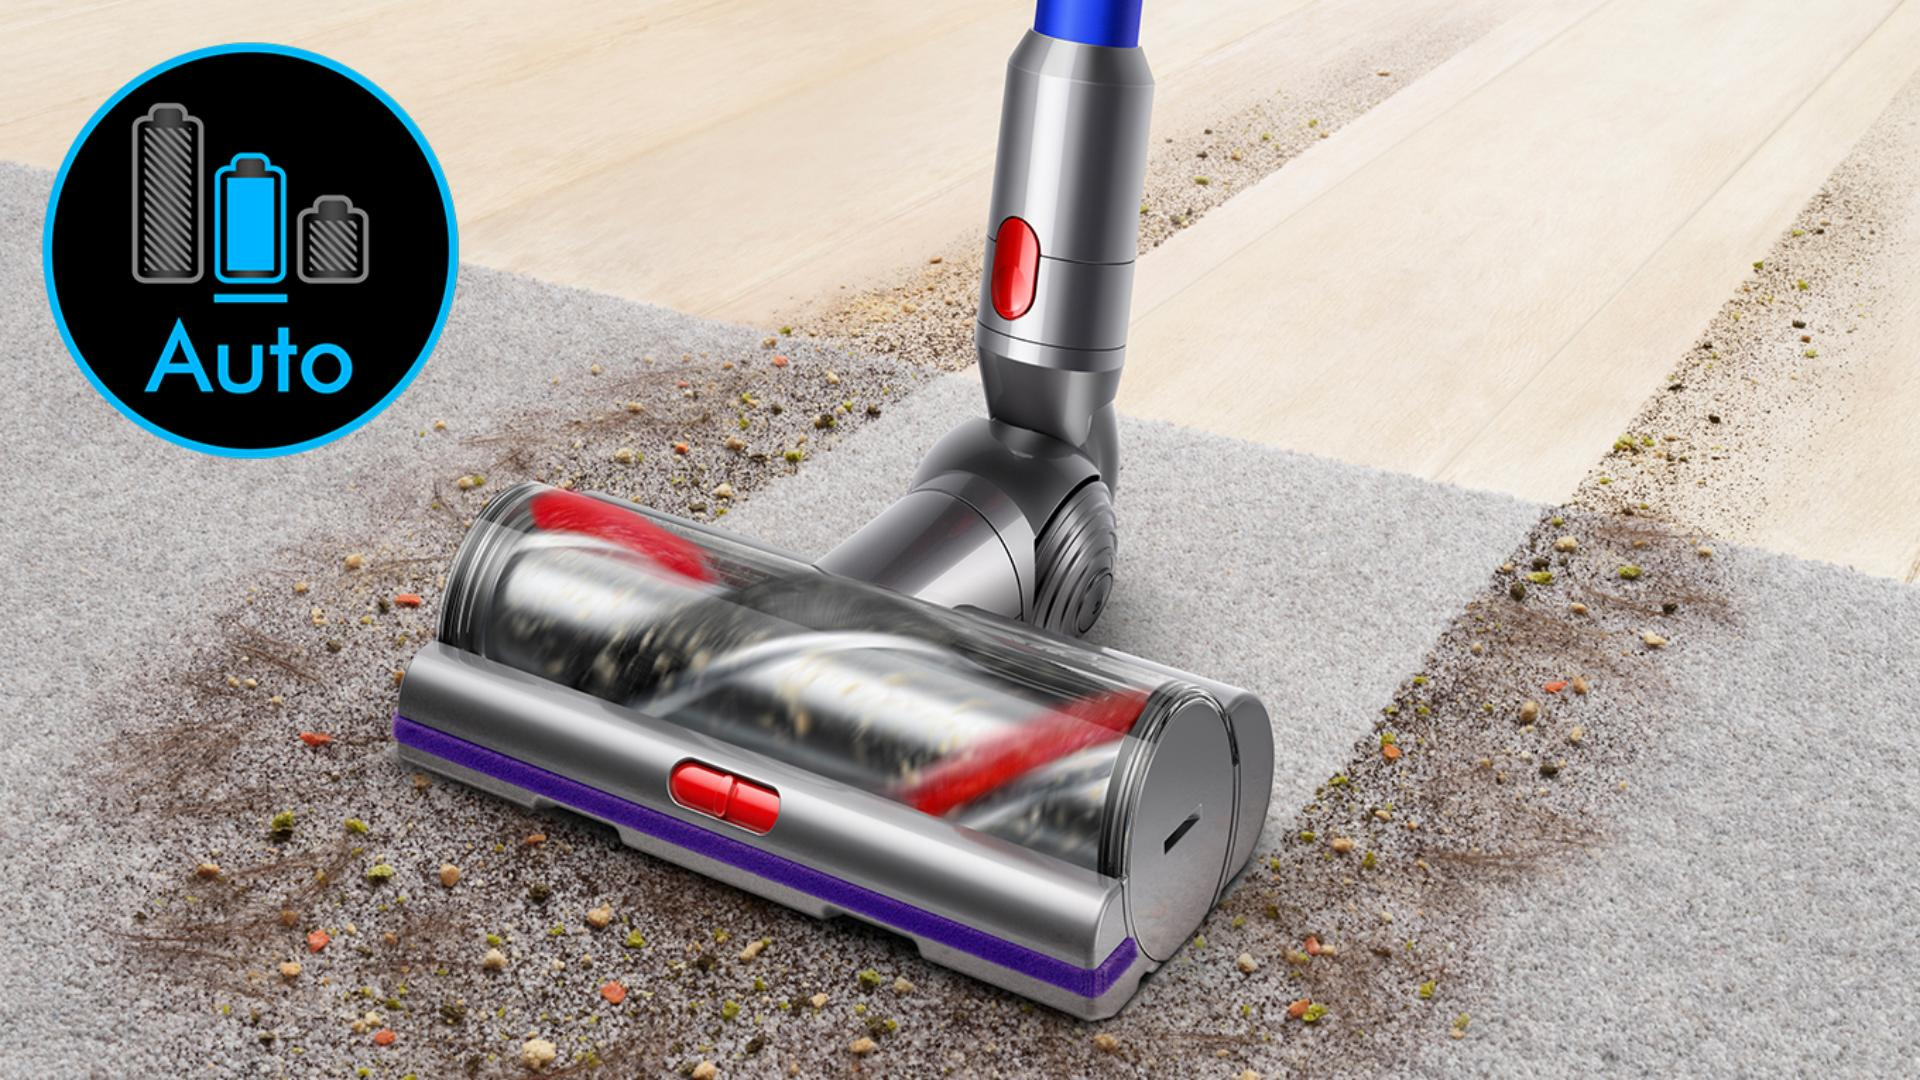 Image of Dyson V11 vacuum cleaner's high torque cleaner head